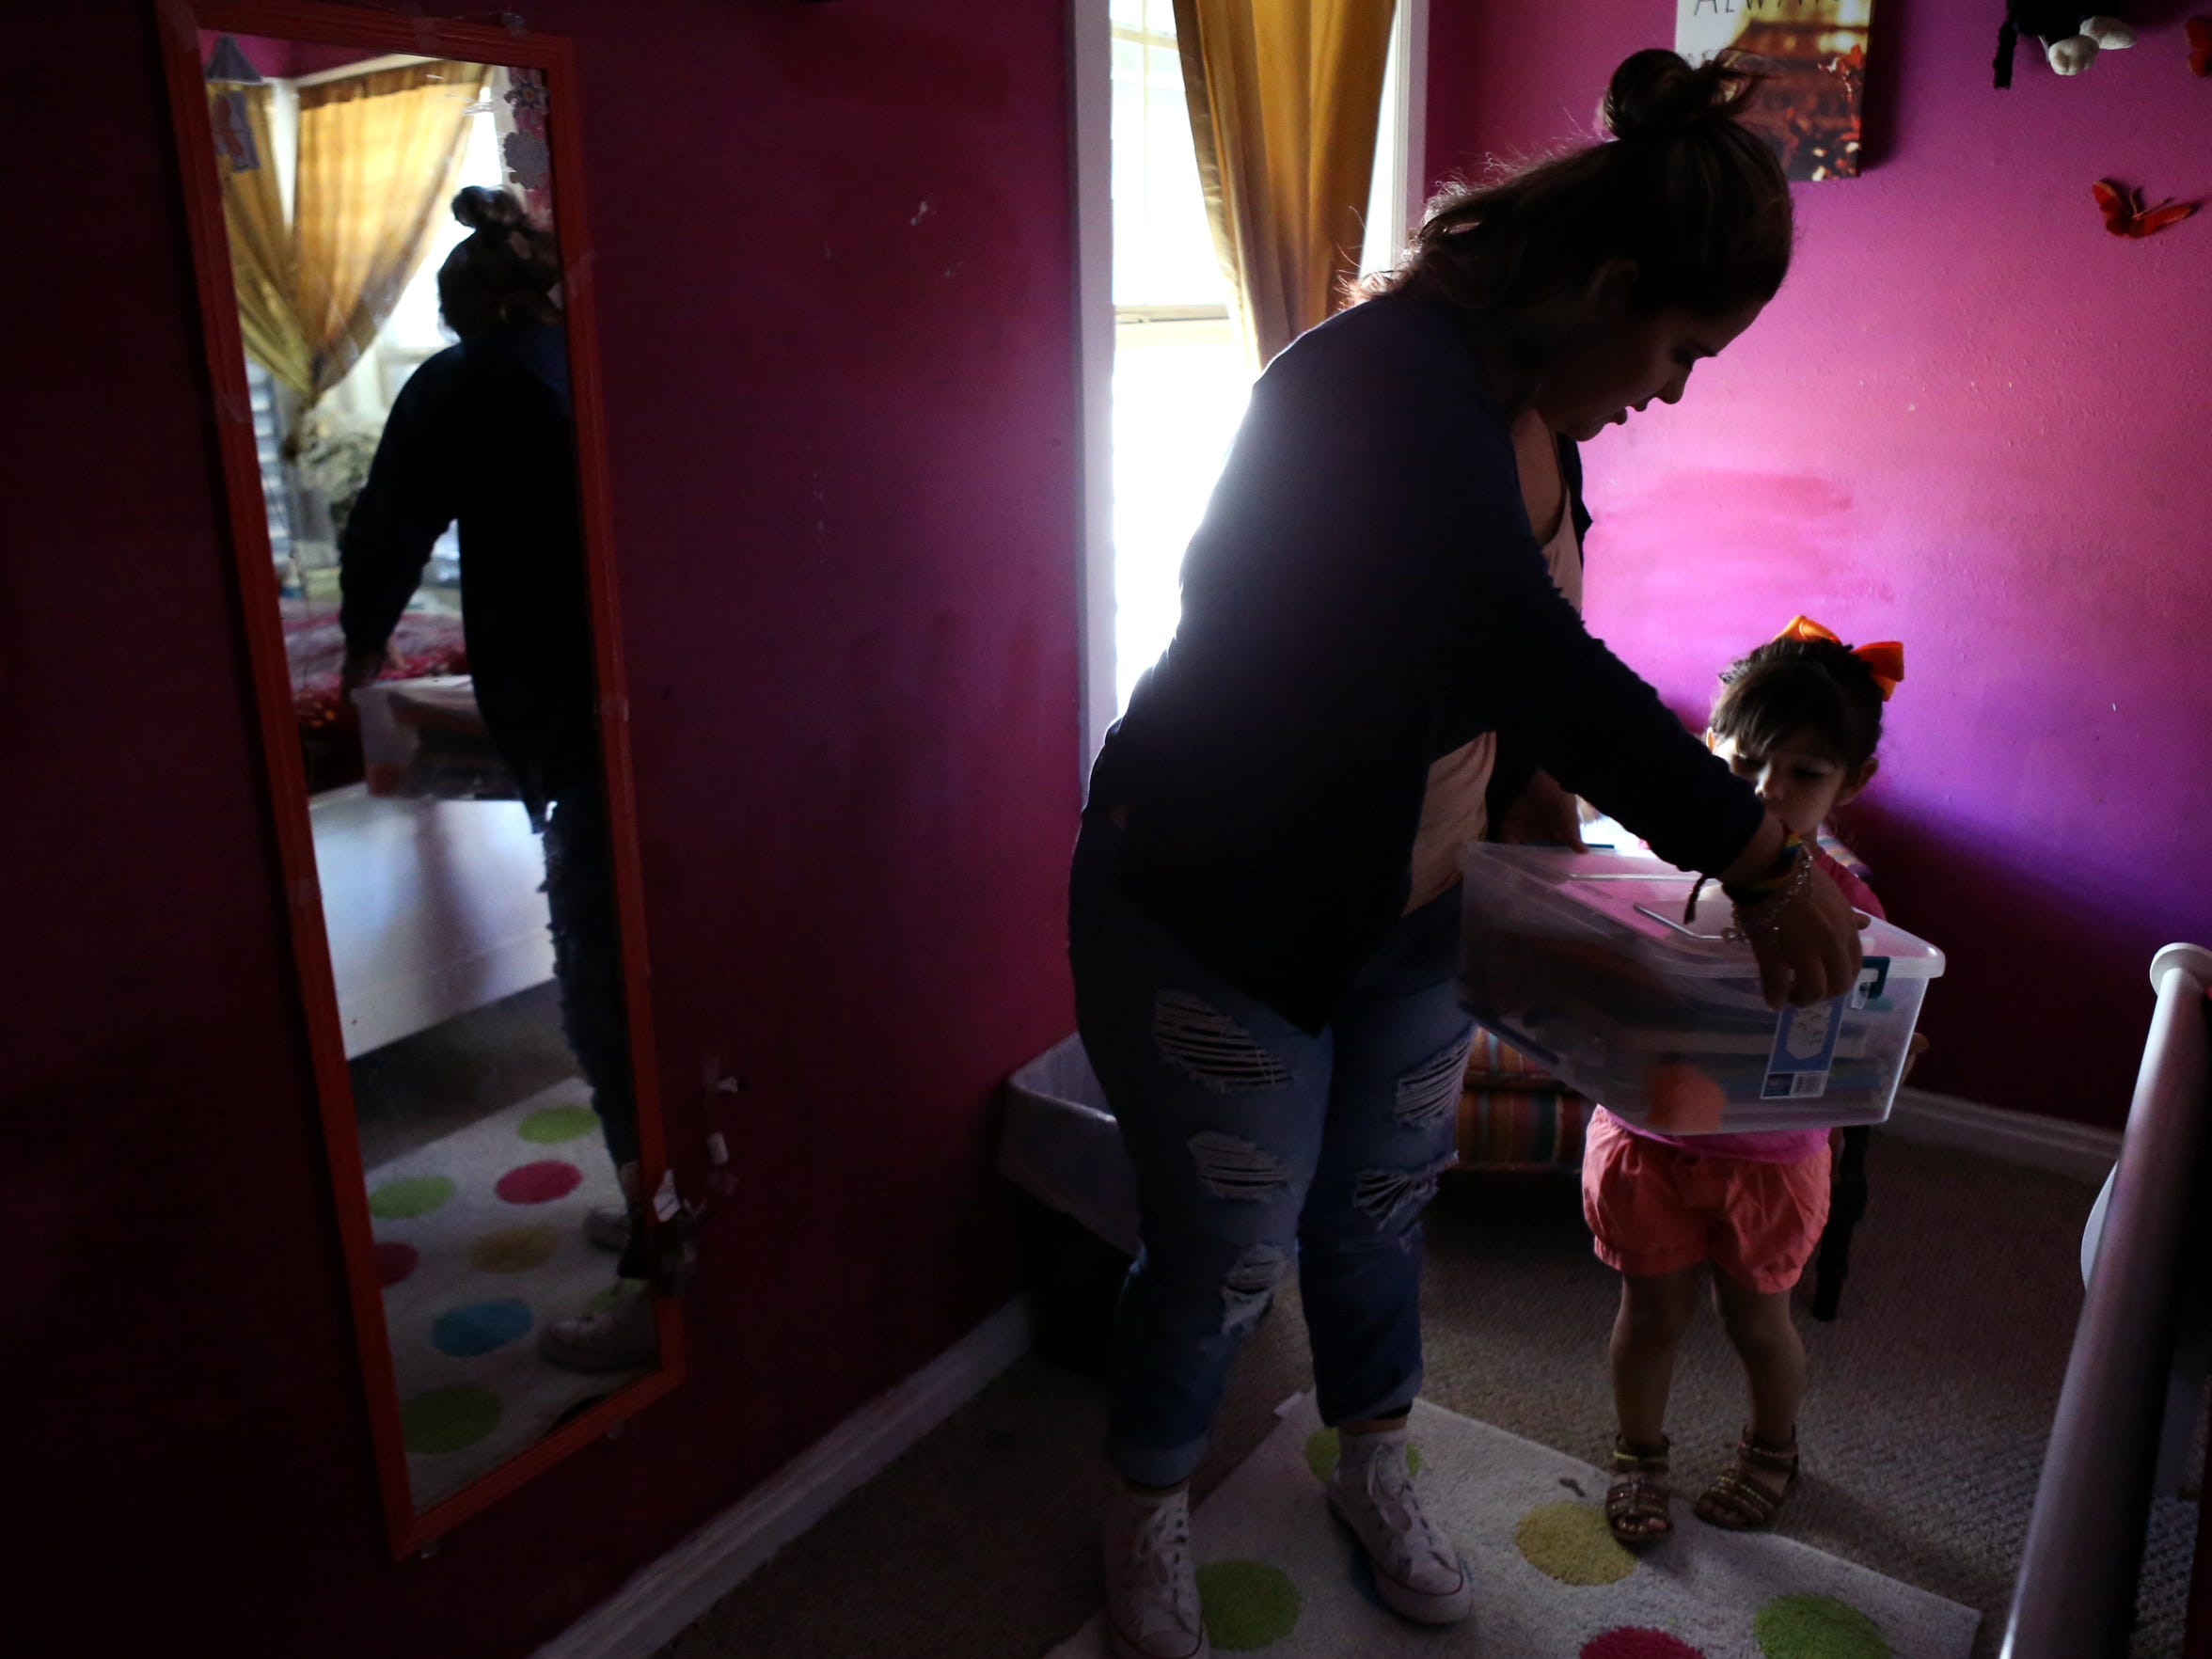 Claudia Jimenez gets markers for her niece Valeria Jimenez, 3, on October 16, 2017. ÒMy family, theyÕre my everything,Ó Jimenez said. ÒTheyÕre the only thing I have here.Ó